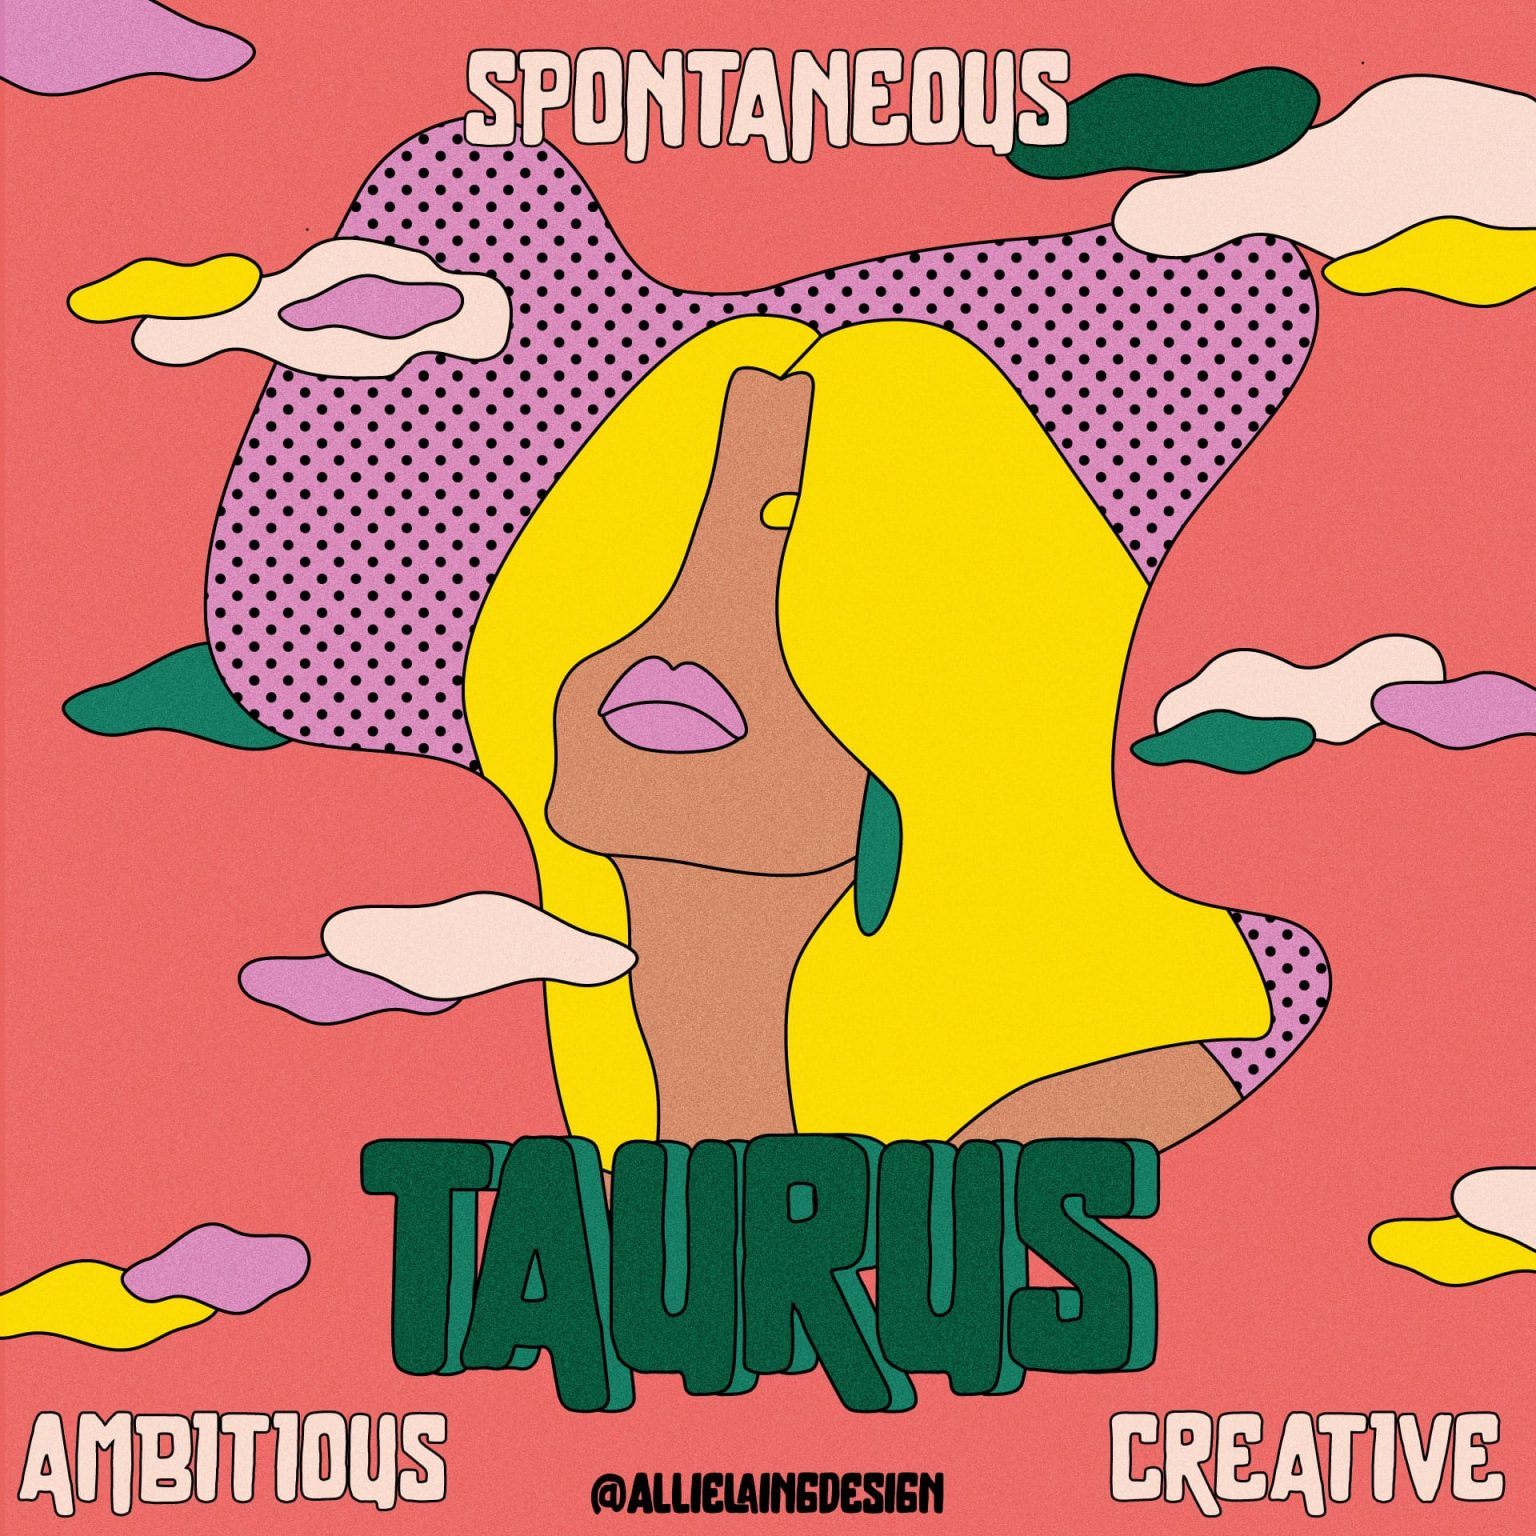 taurus astrology sign stickers